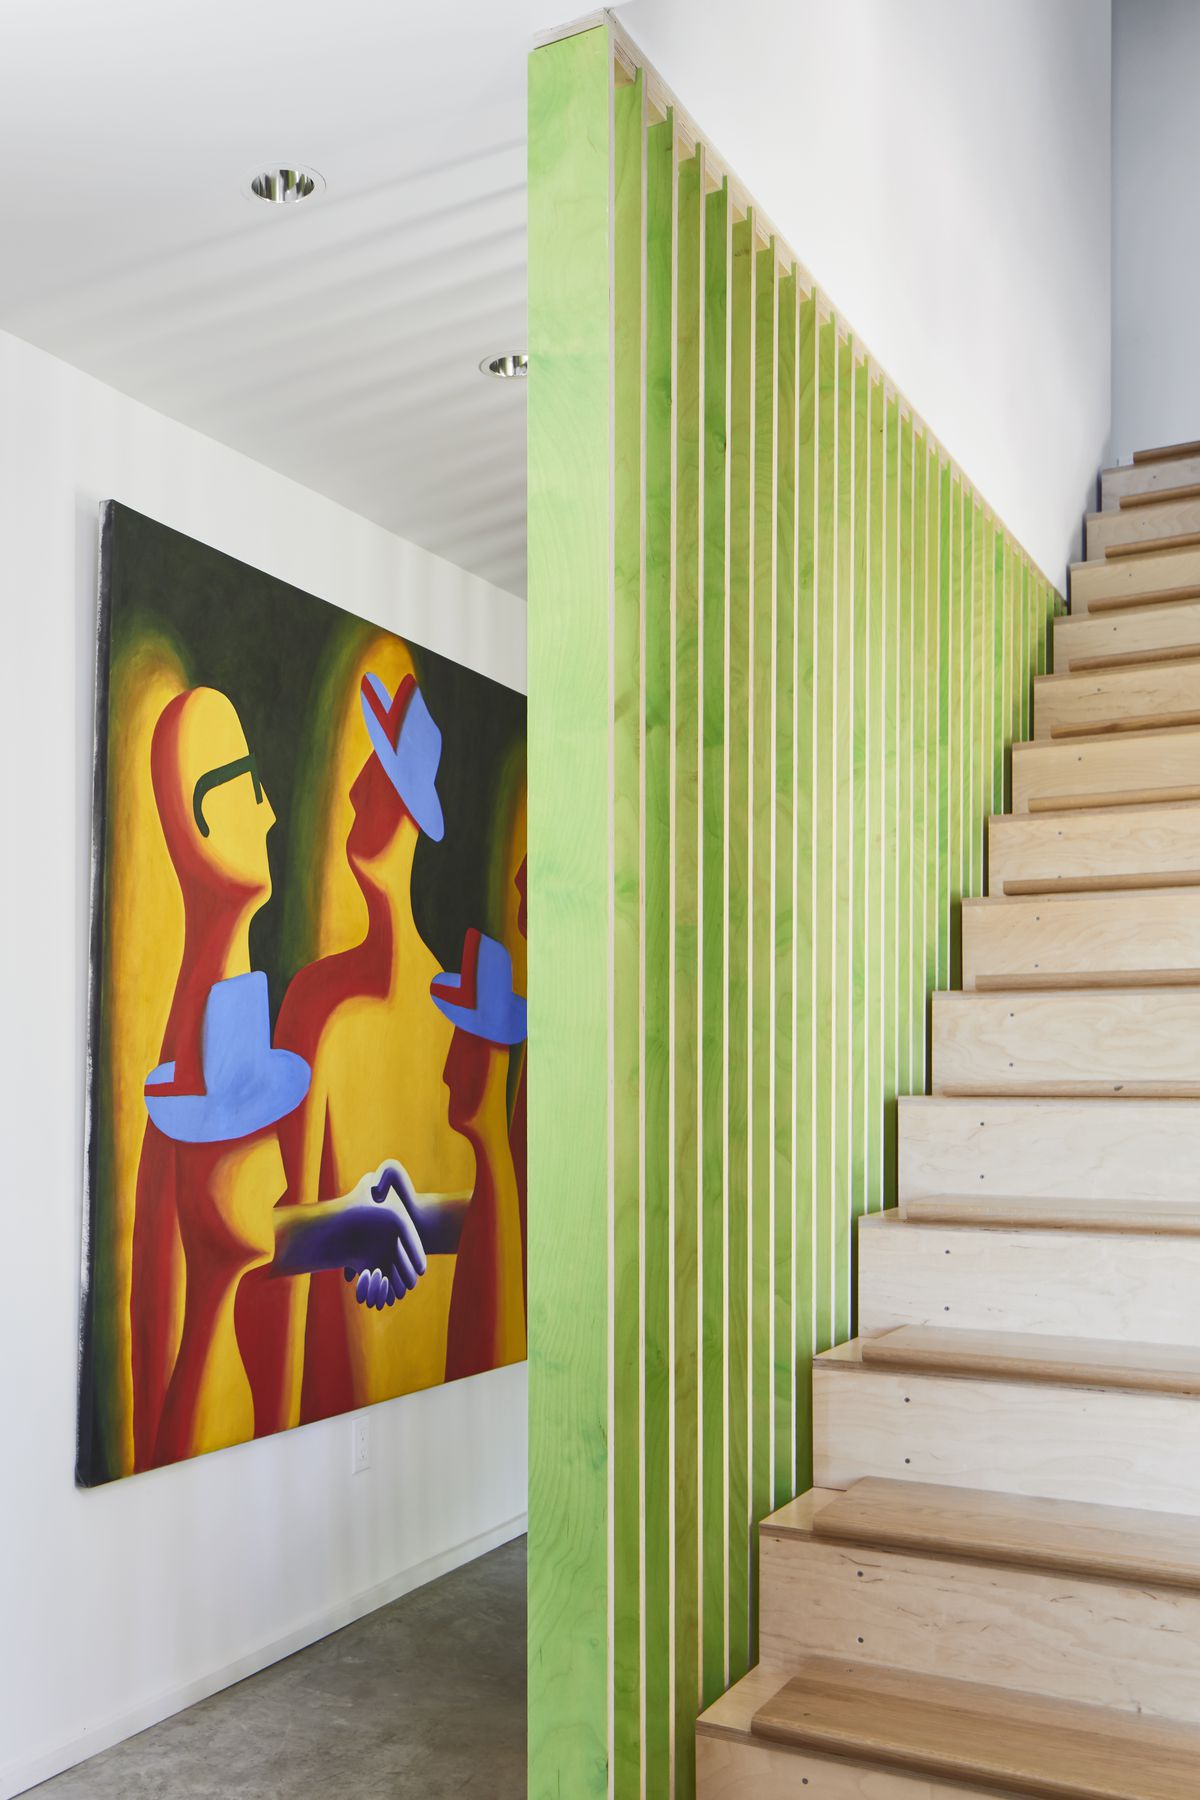 A staircase with wooden stairs. There are green wooden slats on the side of the stairs. There is a colorful work of art hanging on a white wall facing the staircase.